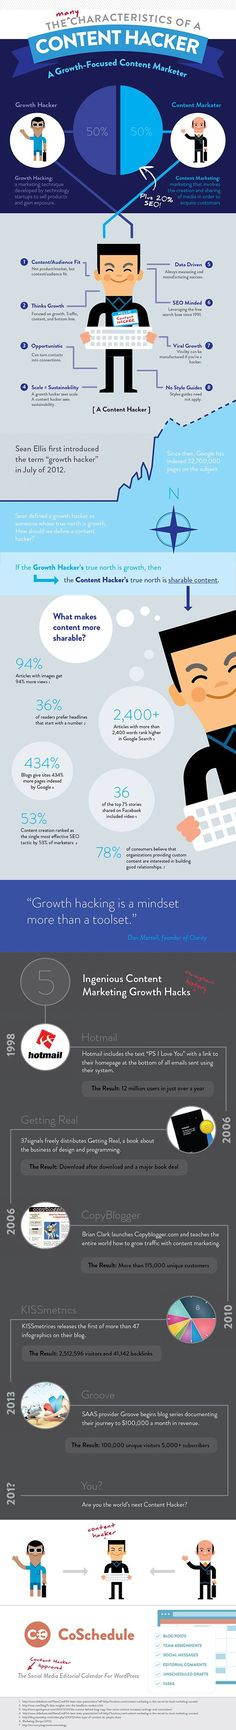 Characteristics of Content Marketing Infographic (560×4107) by CoSchedule A growth-focused content marketer is for startups or small businesses wanting to enhance their presence online. Learn why a SEO-minded and data-driven content strategy can help improve your digital marketing plan.